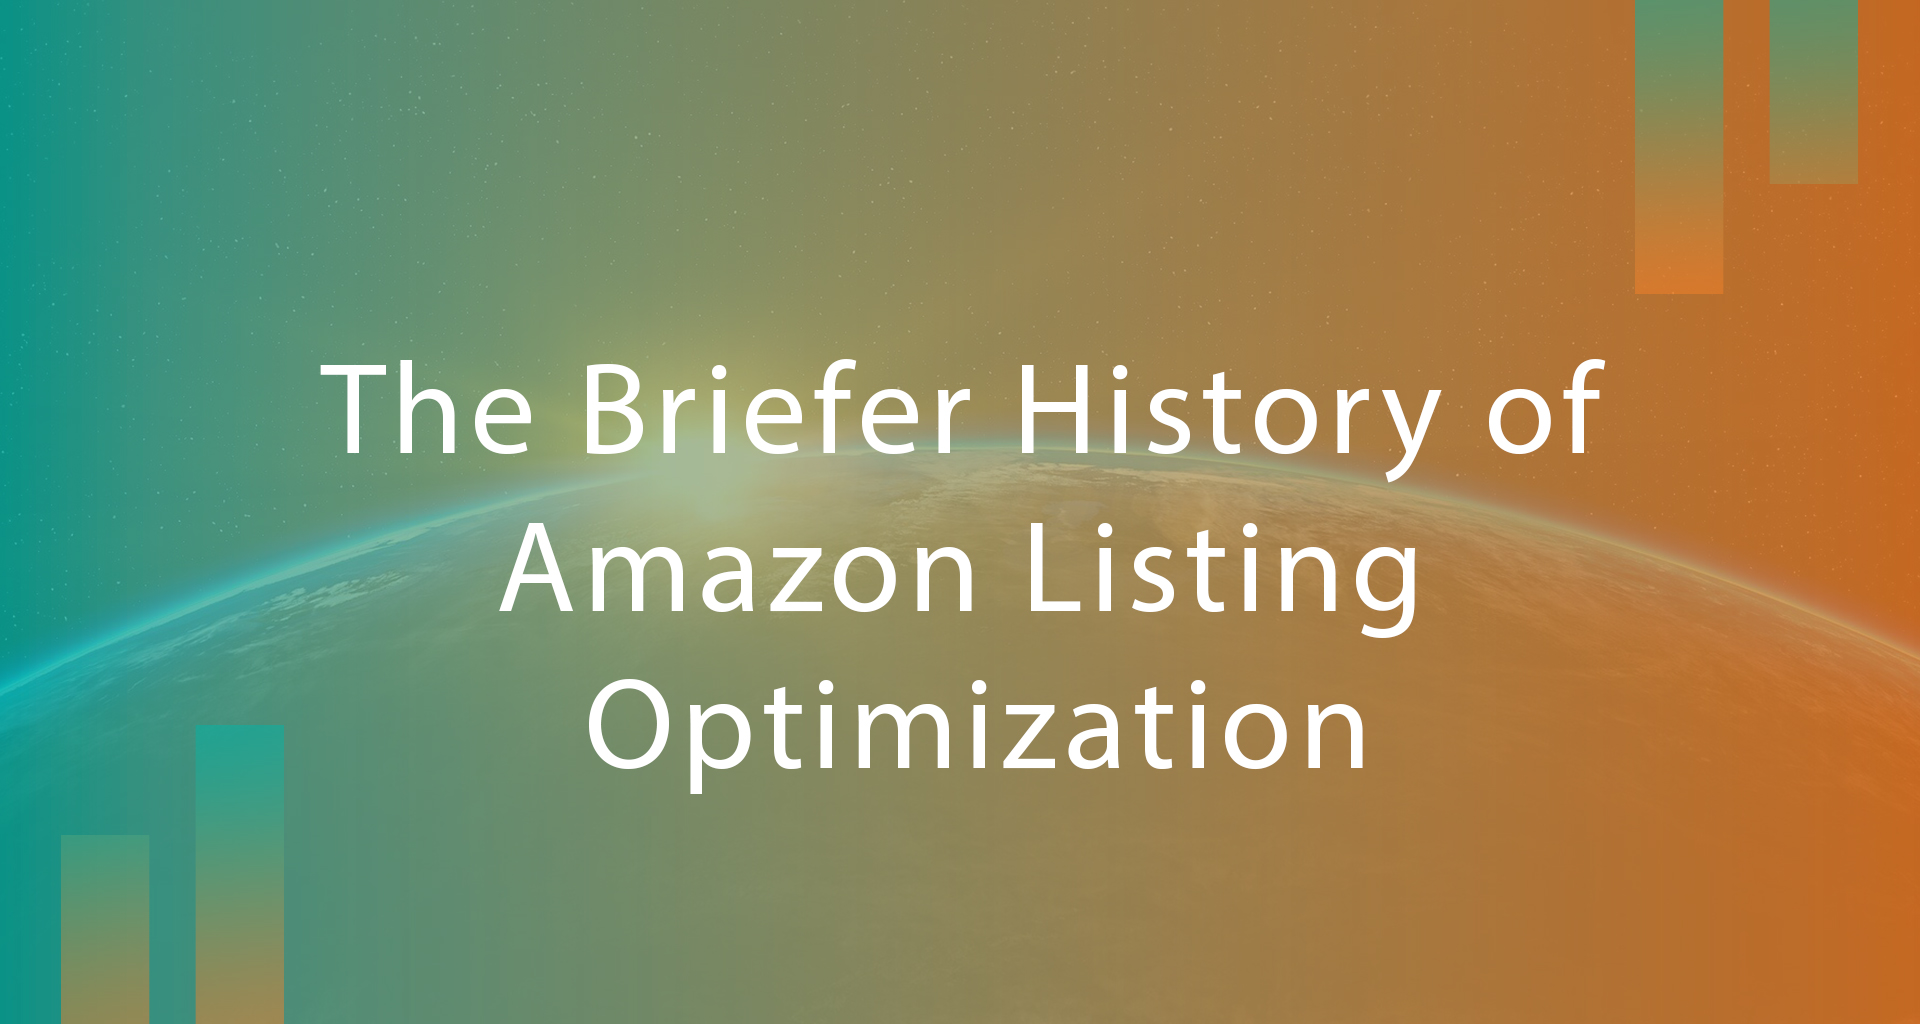 The Briefer History of Amazon Listing Optimisation